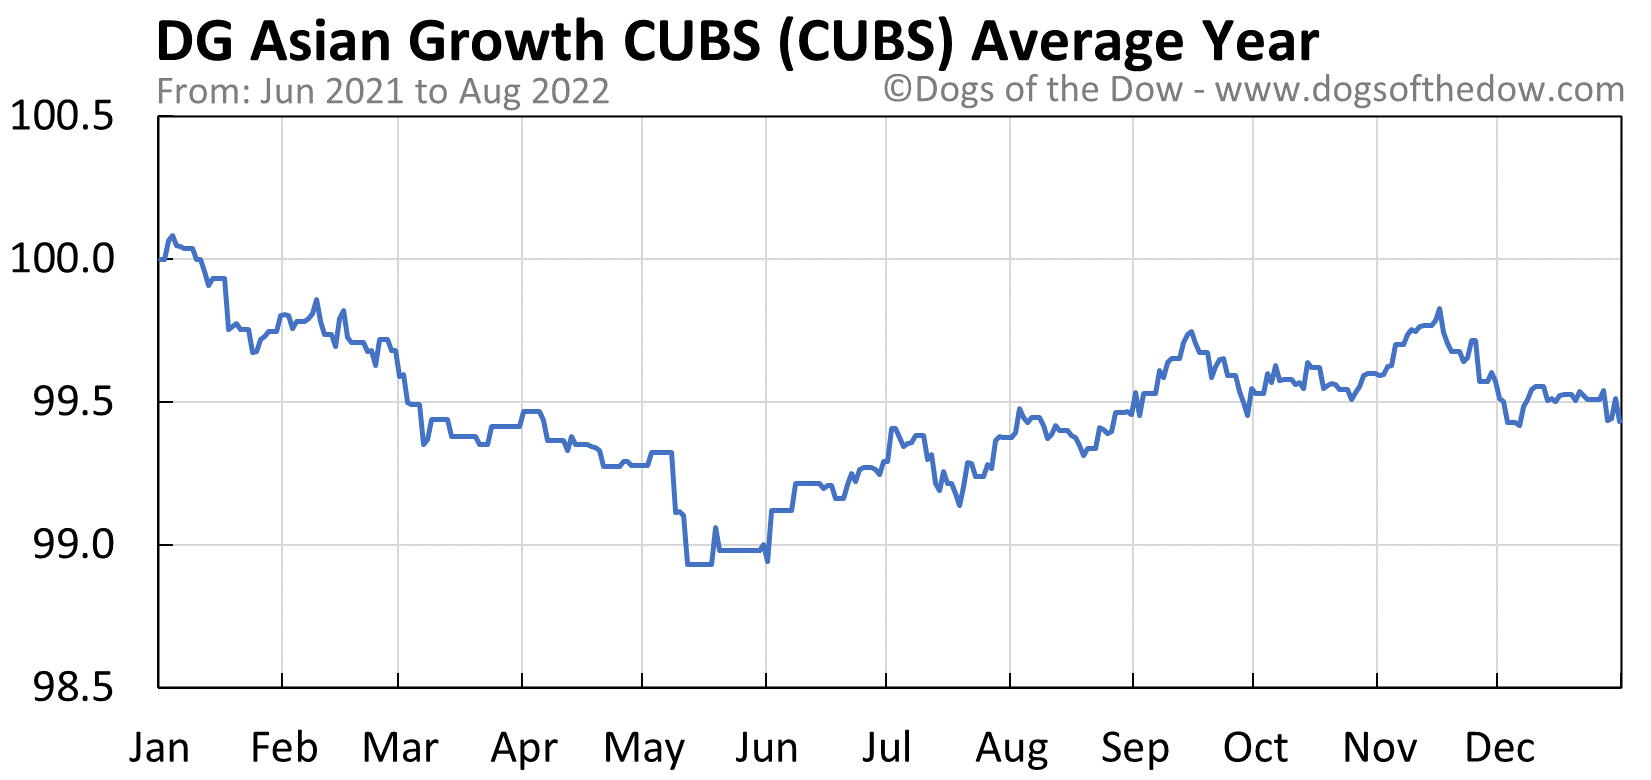 CUBS average year chart